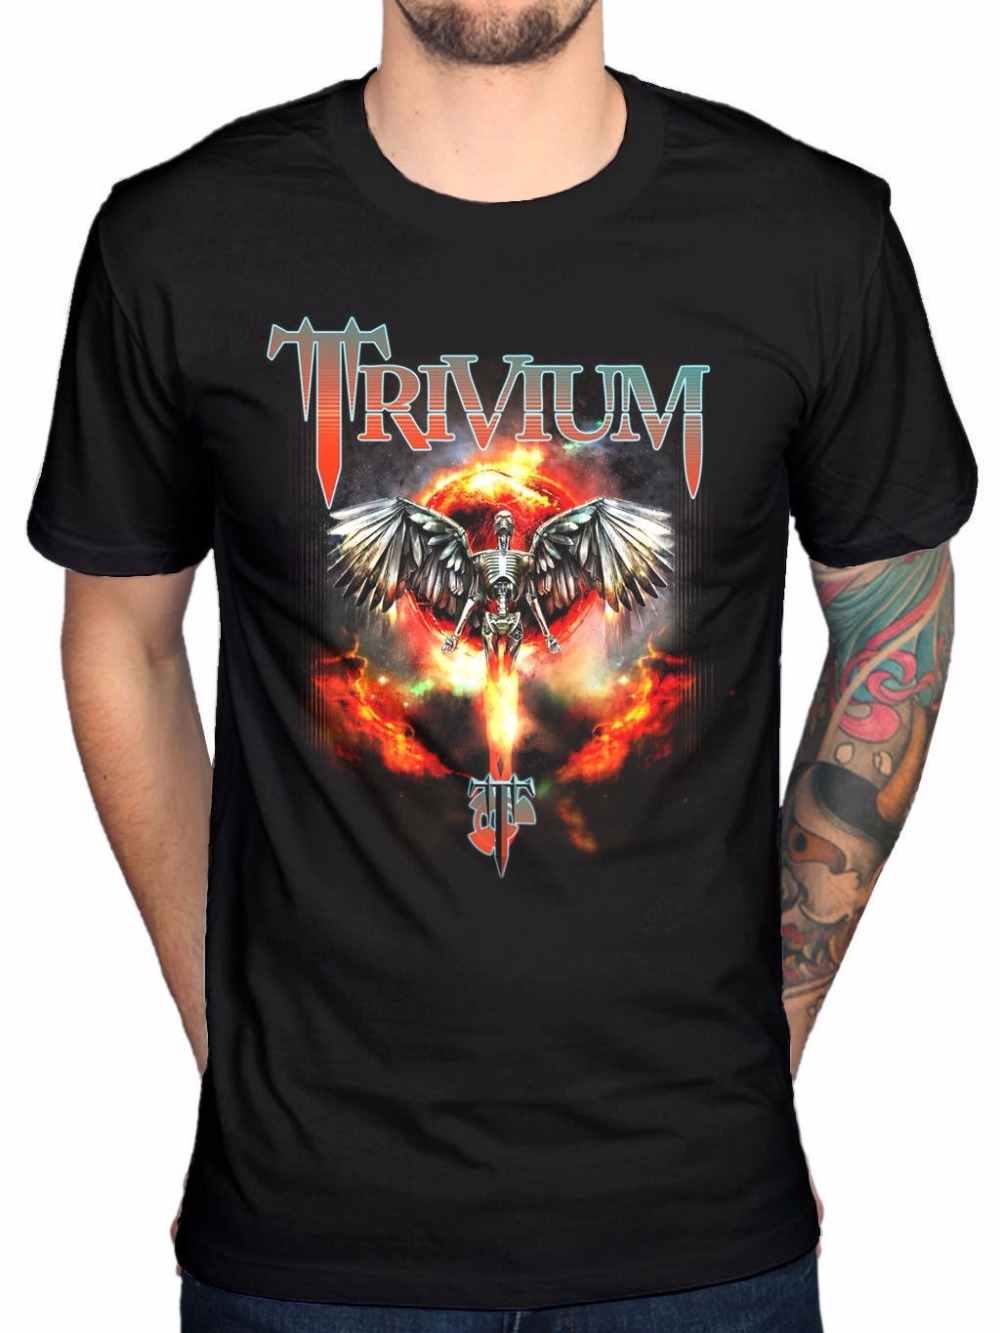 Buy T Shirt Designs Crew Neck Trivium Watching The World Burn Print Short Sleeve Men Cotton T-Shirt Short Graphic Tees For Men